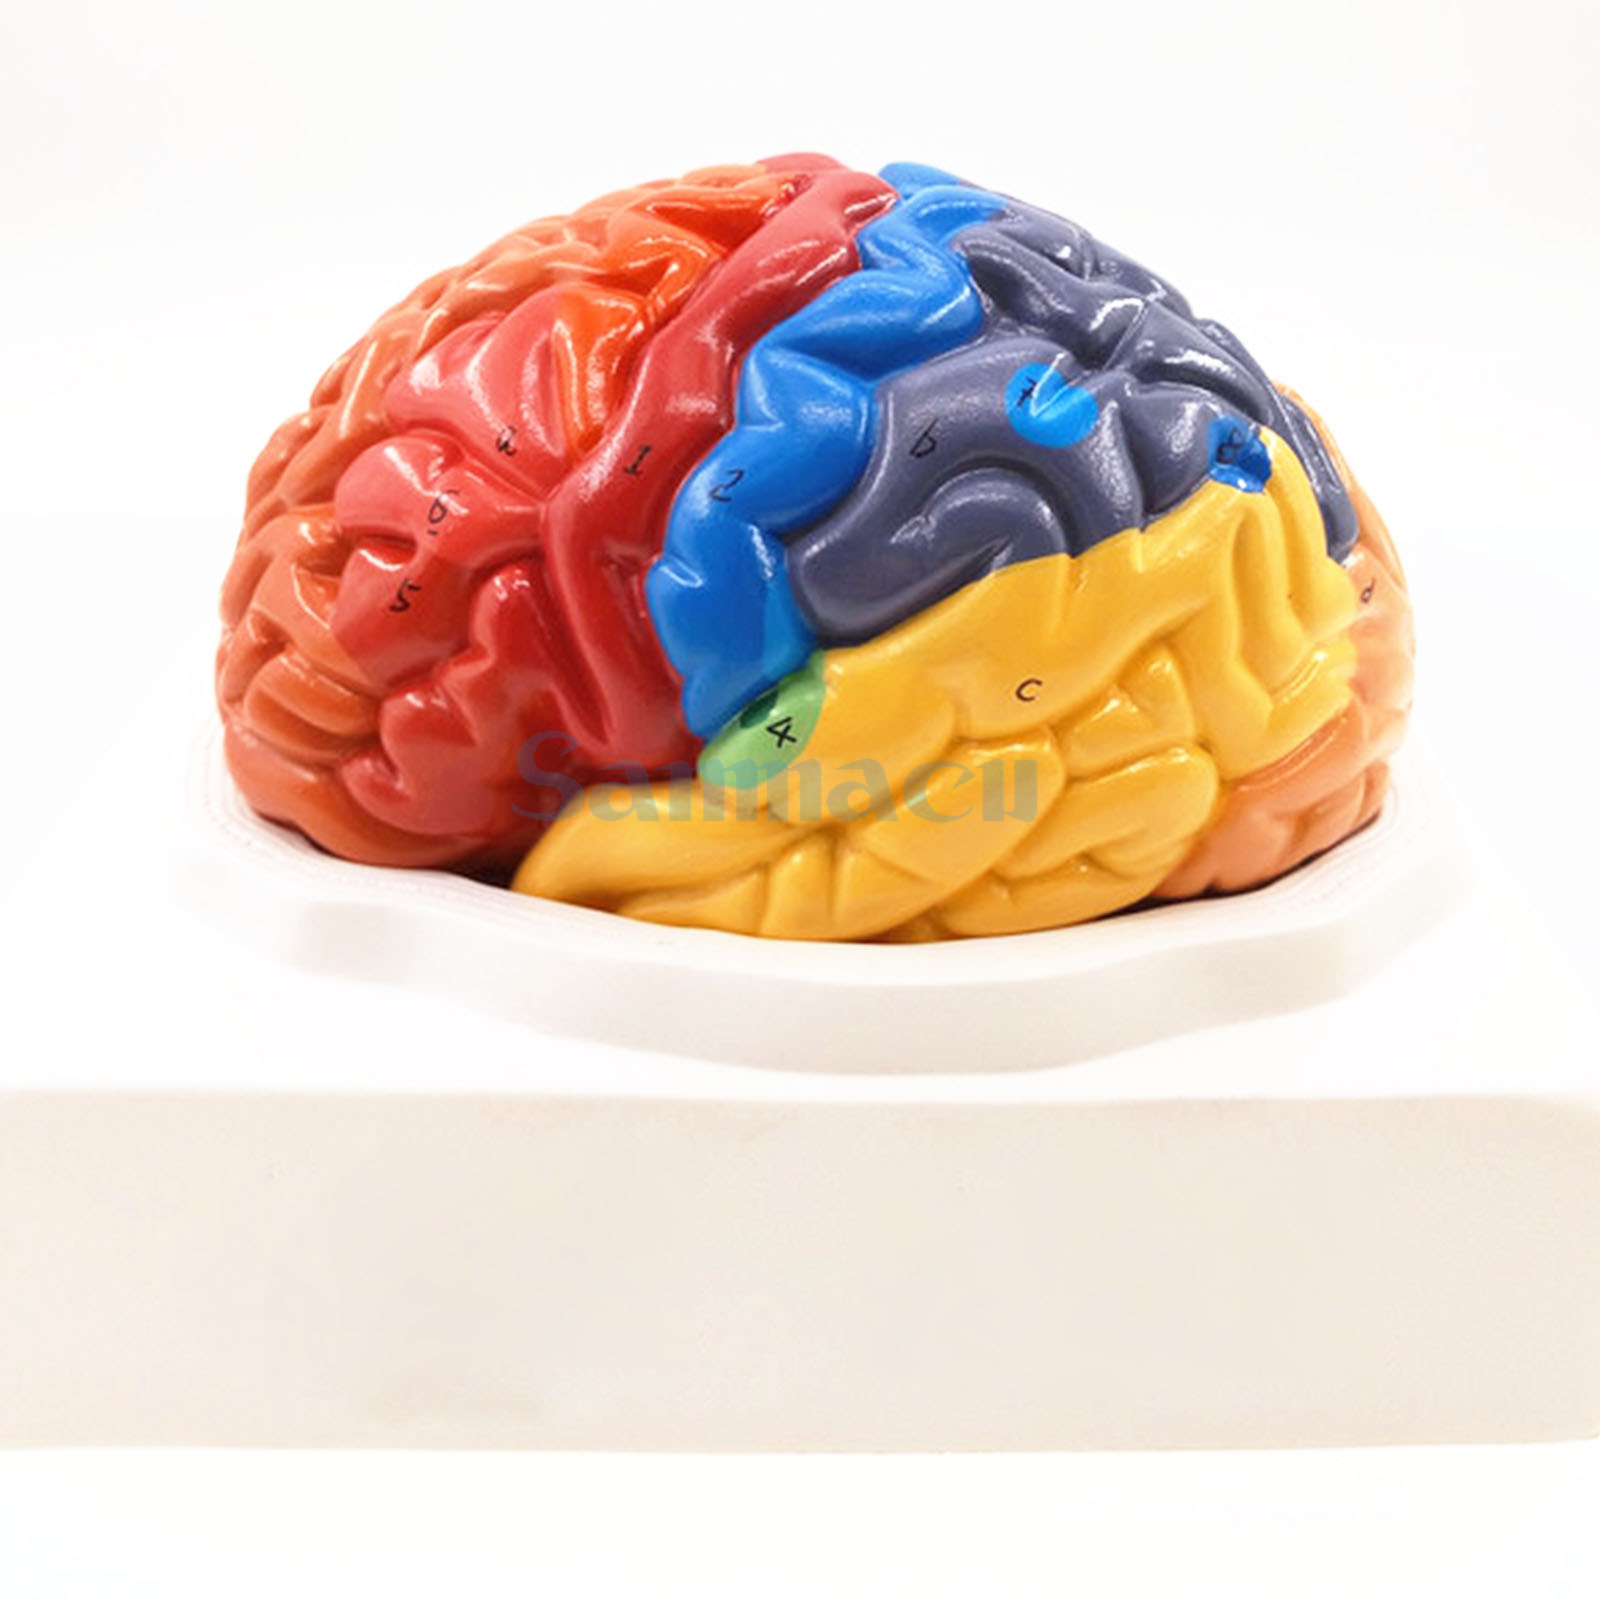 2 Part Color Human Brain Function Domain Anatomy Anatomical Model